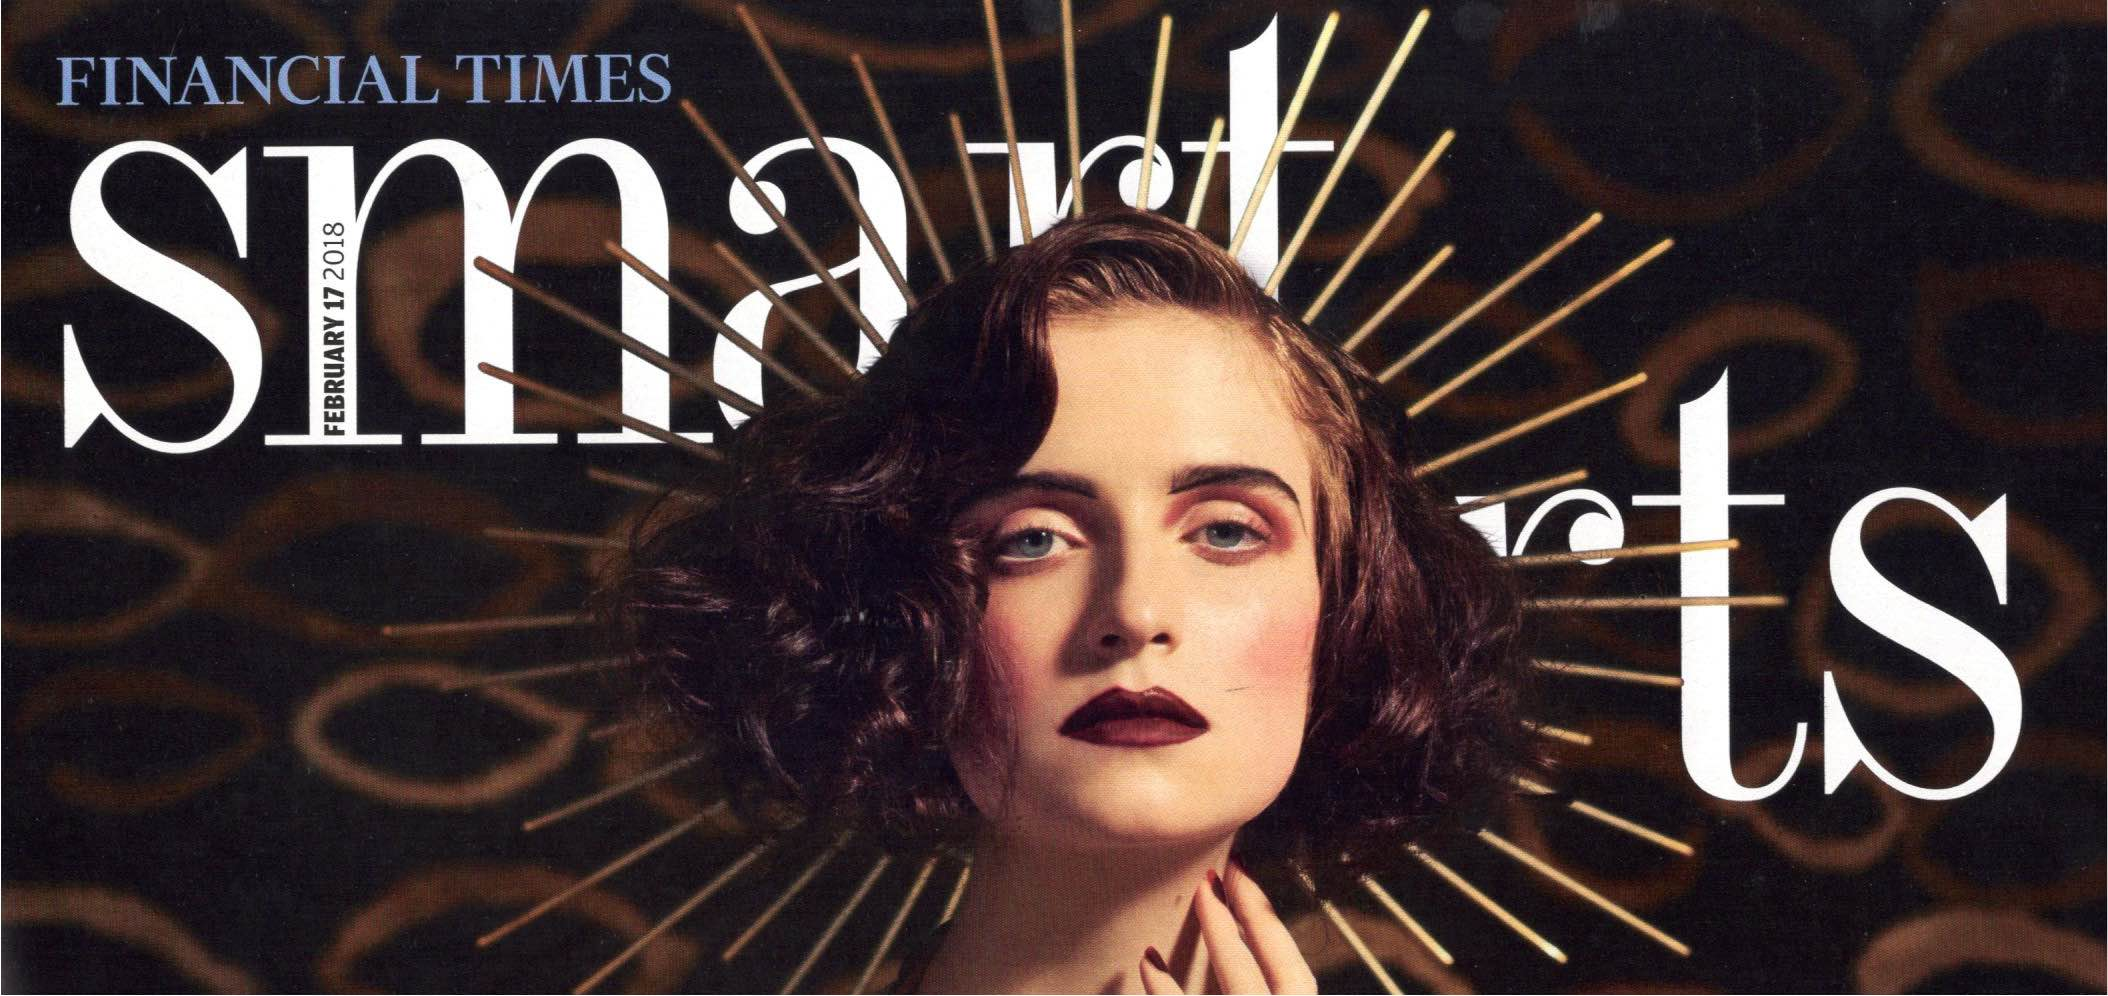 Financial Times Smart Arts - How to Spend it Magazine, February 2018